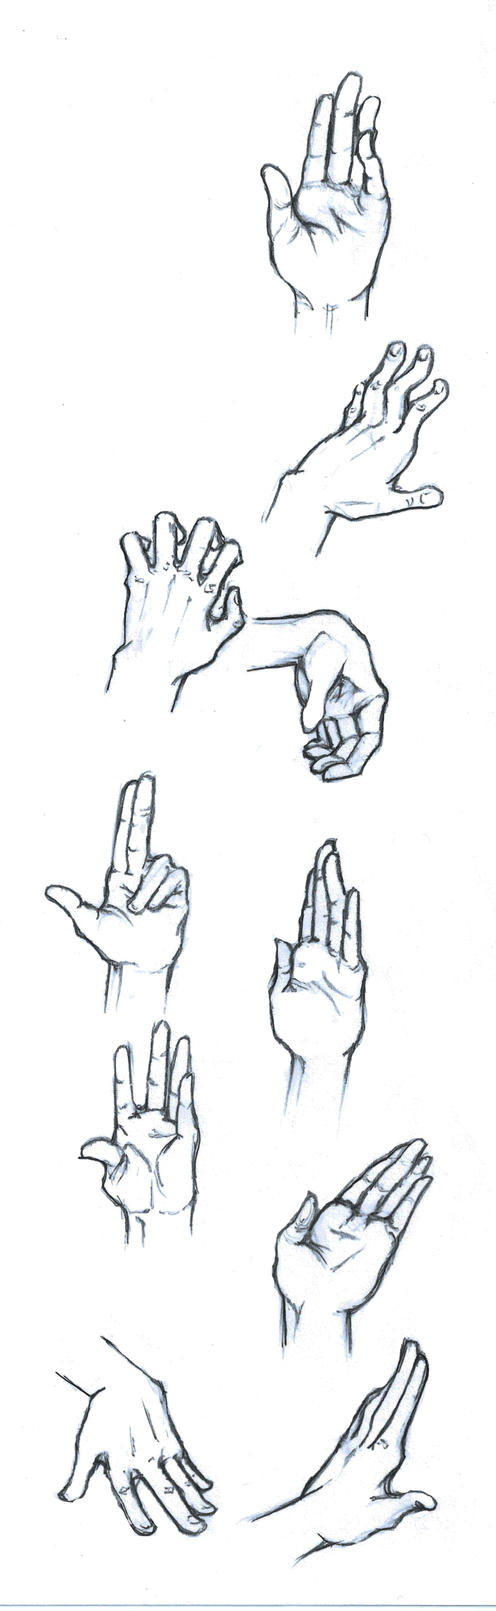 Hands Practice by SolaValko